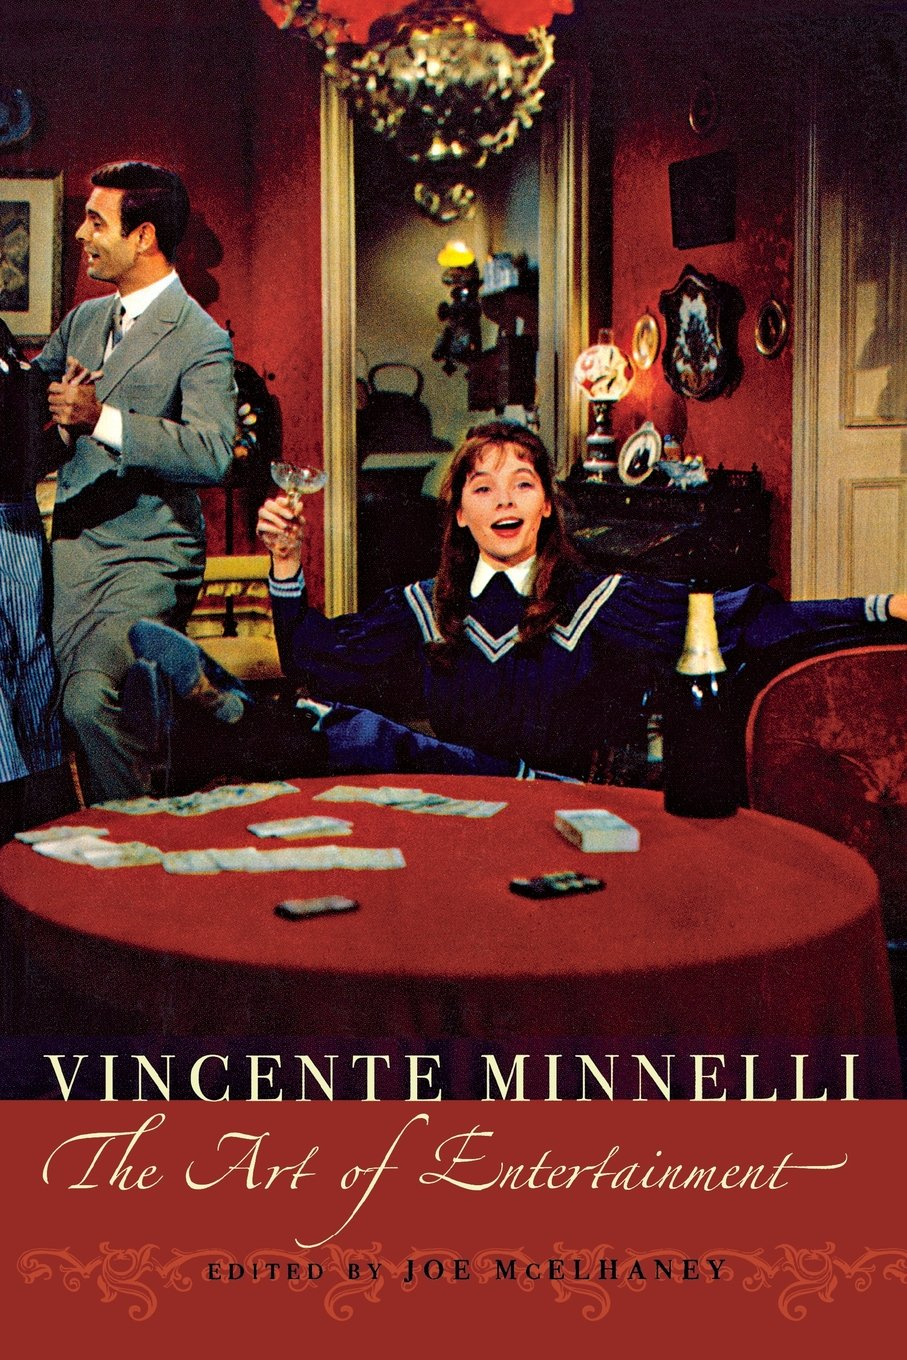 vincente minnelli the art of entertainment contemporary approaches to film and media series